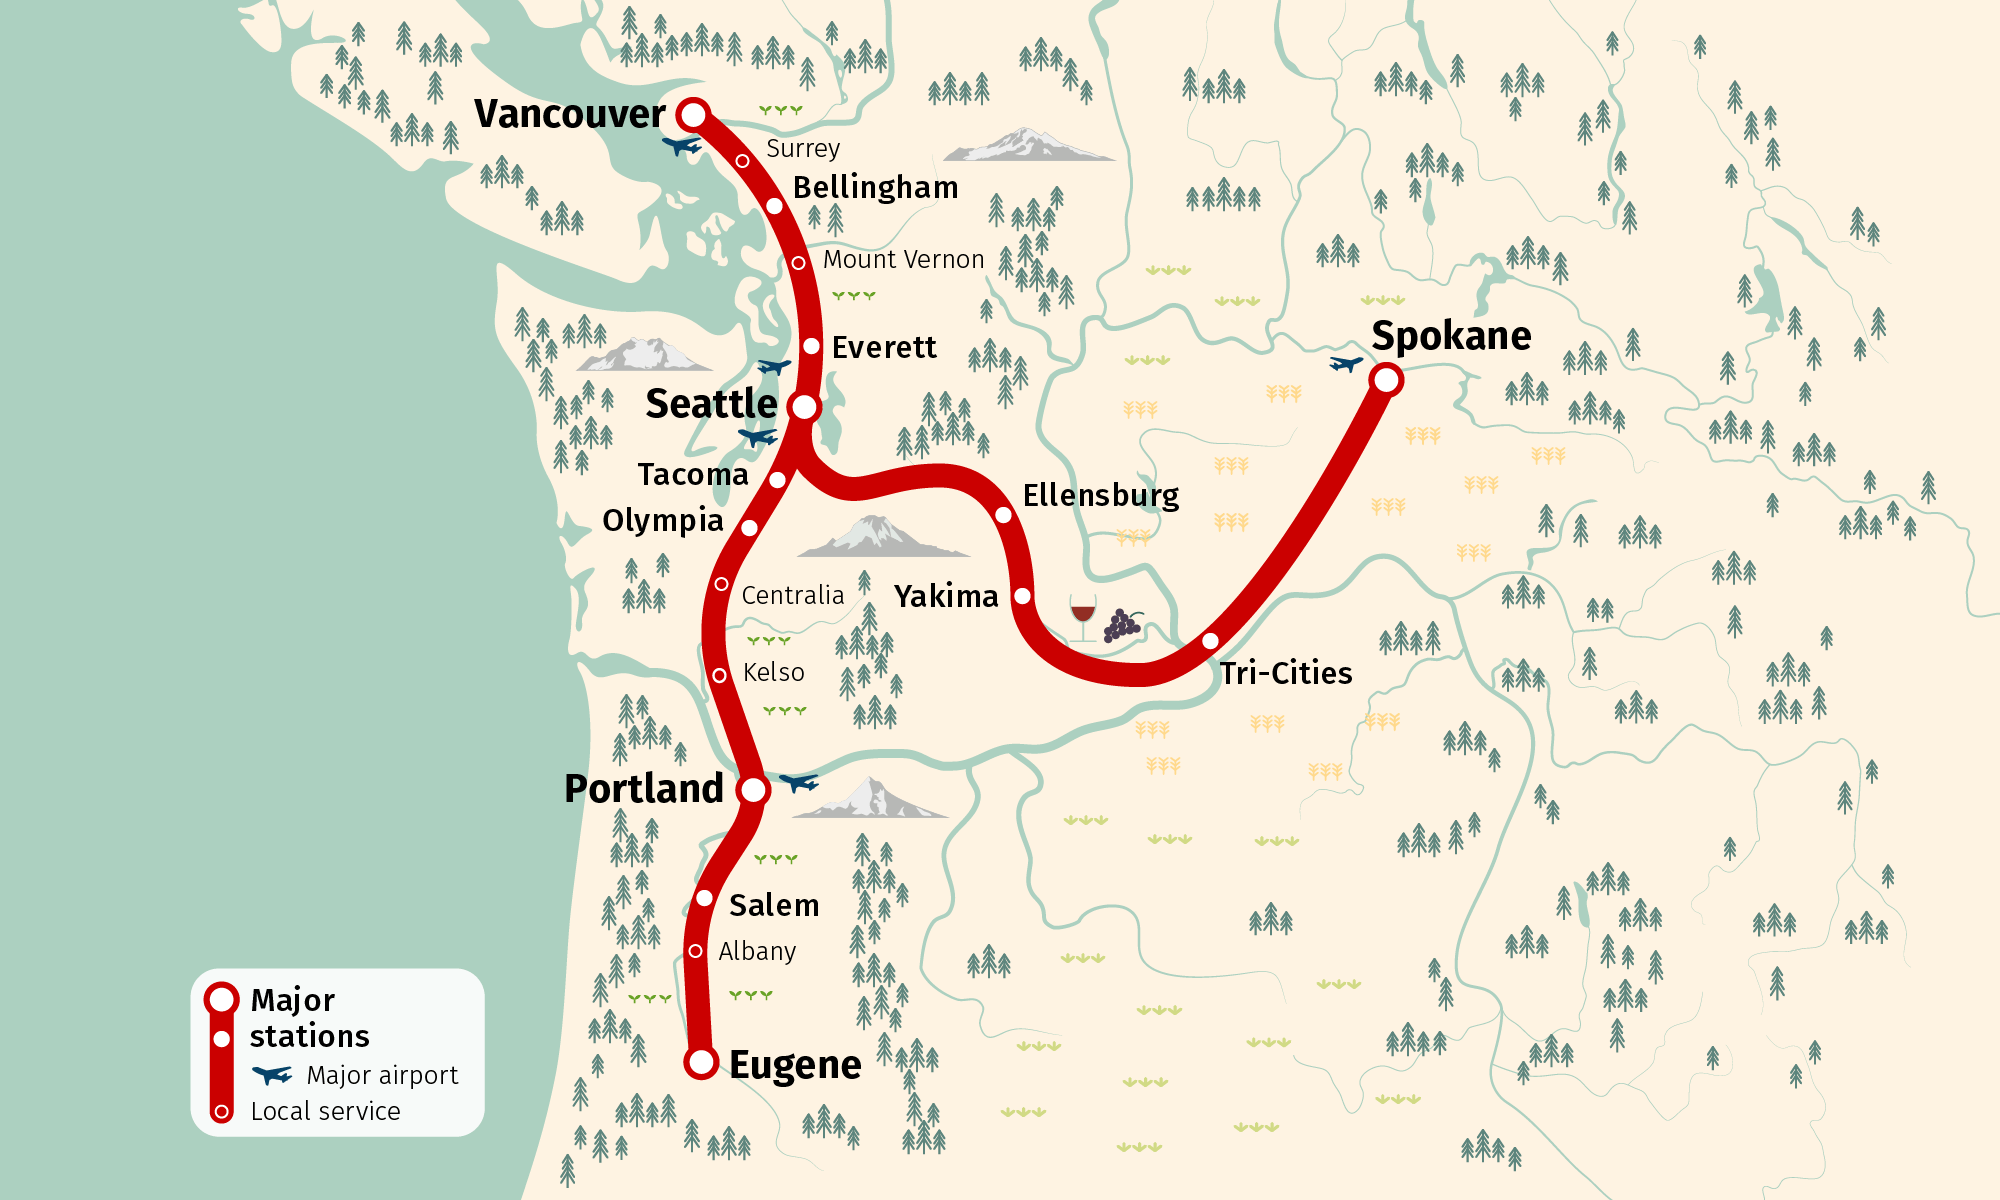 Highspeed rail could link Vancouver Seattle Spokane and Portland